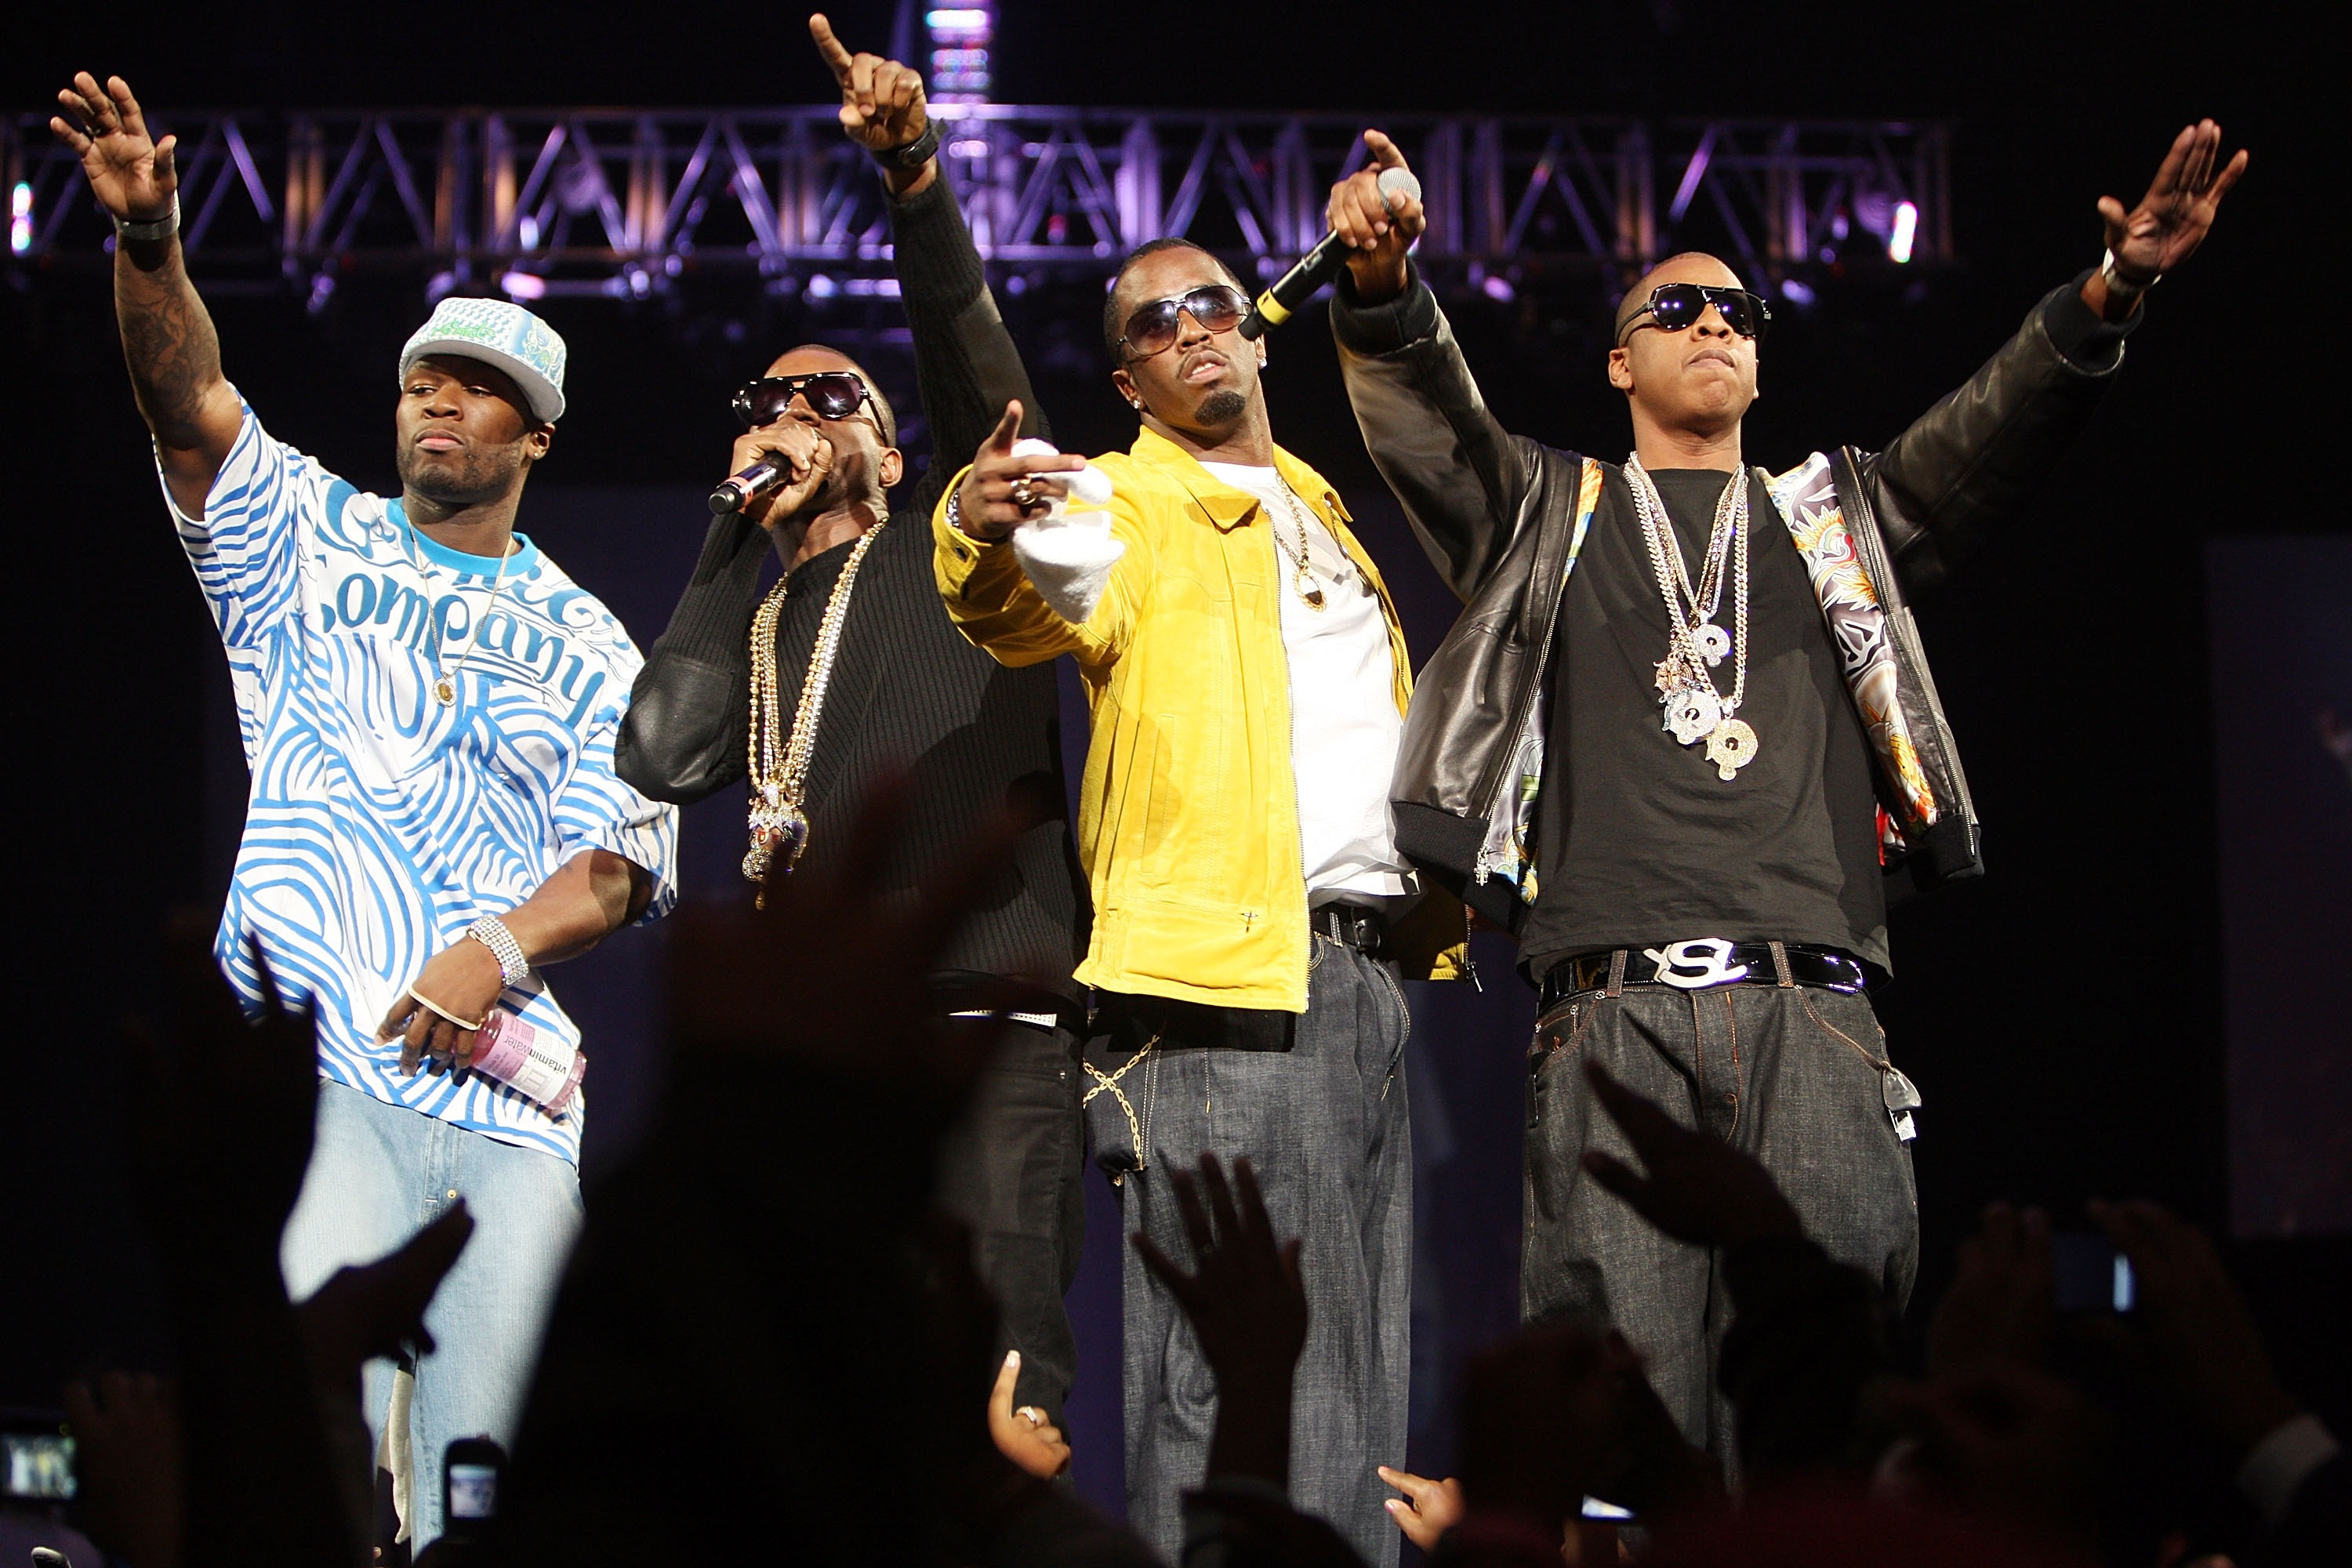 jay-z-ysl-belt-roc-a-fella-chains-50-cent-diddy-kanye